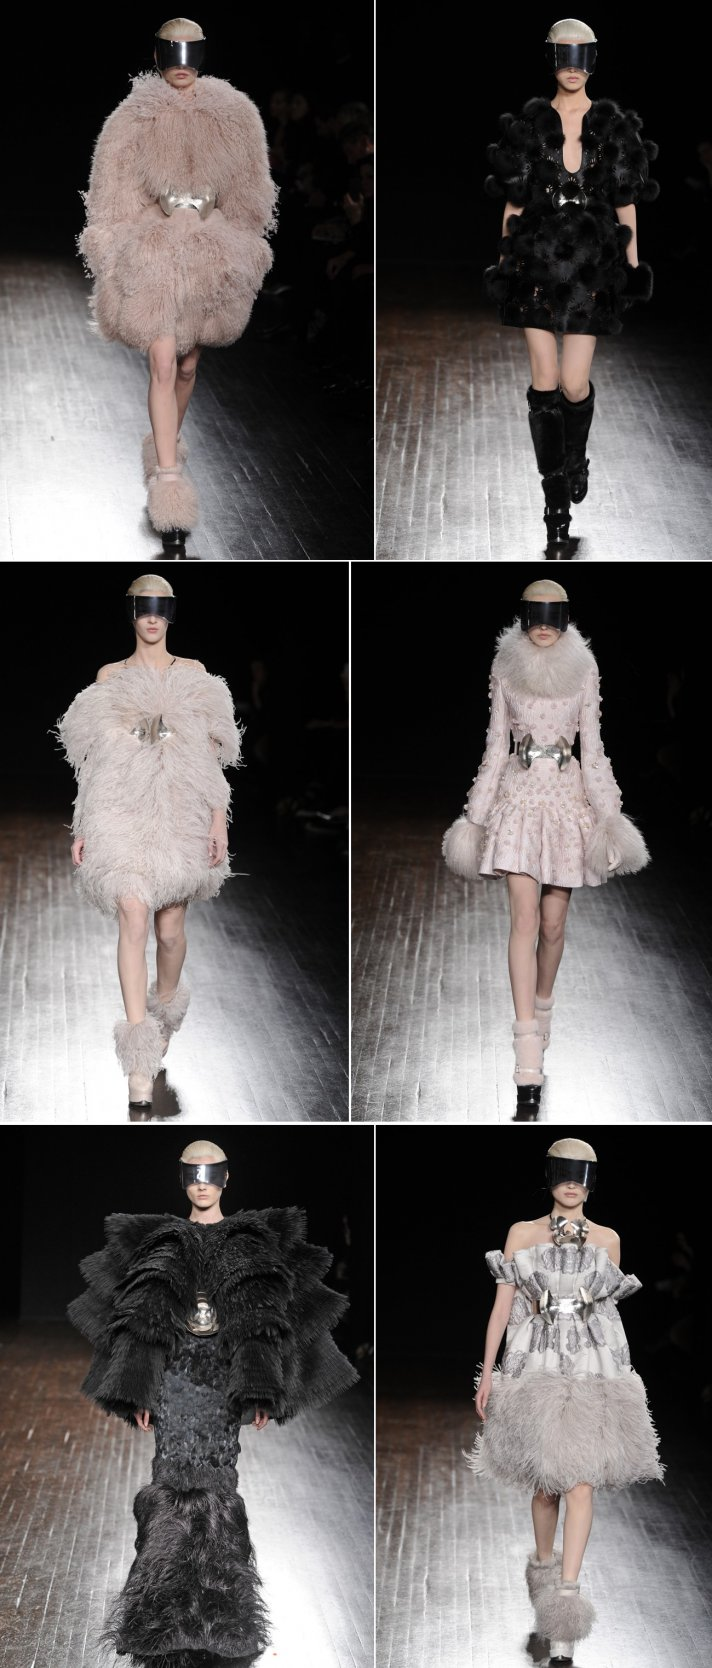 Into the Future with Alexander McQueen